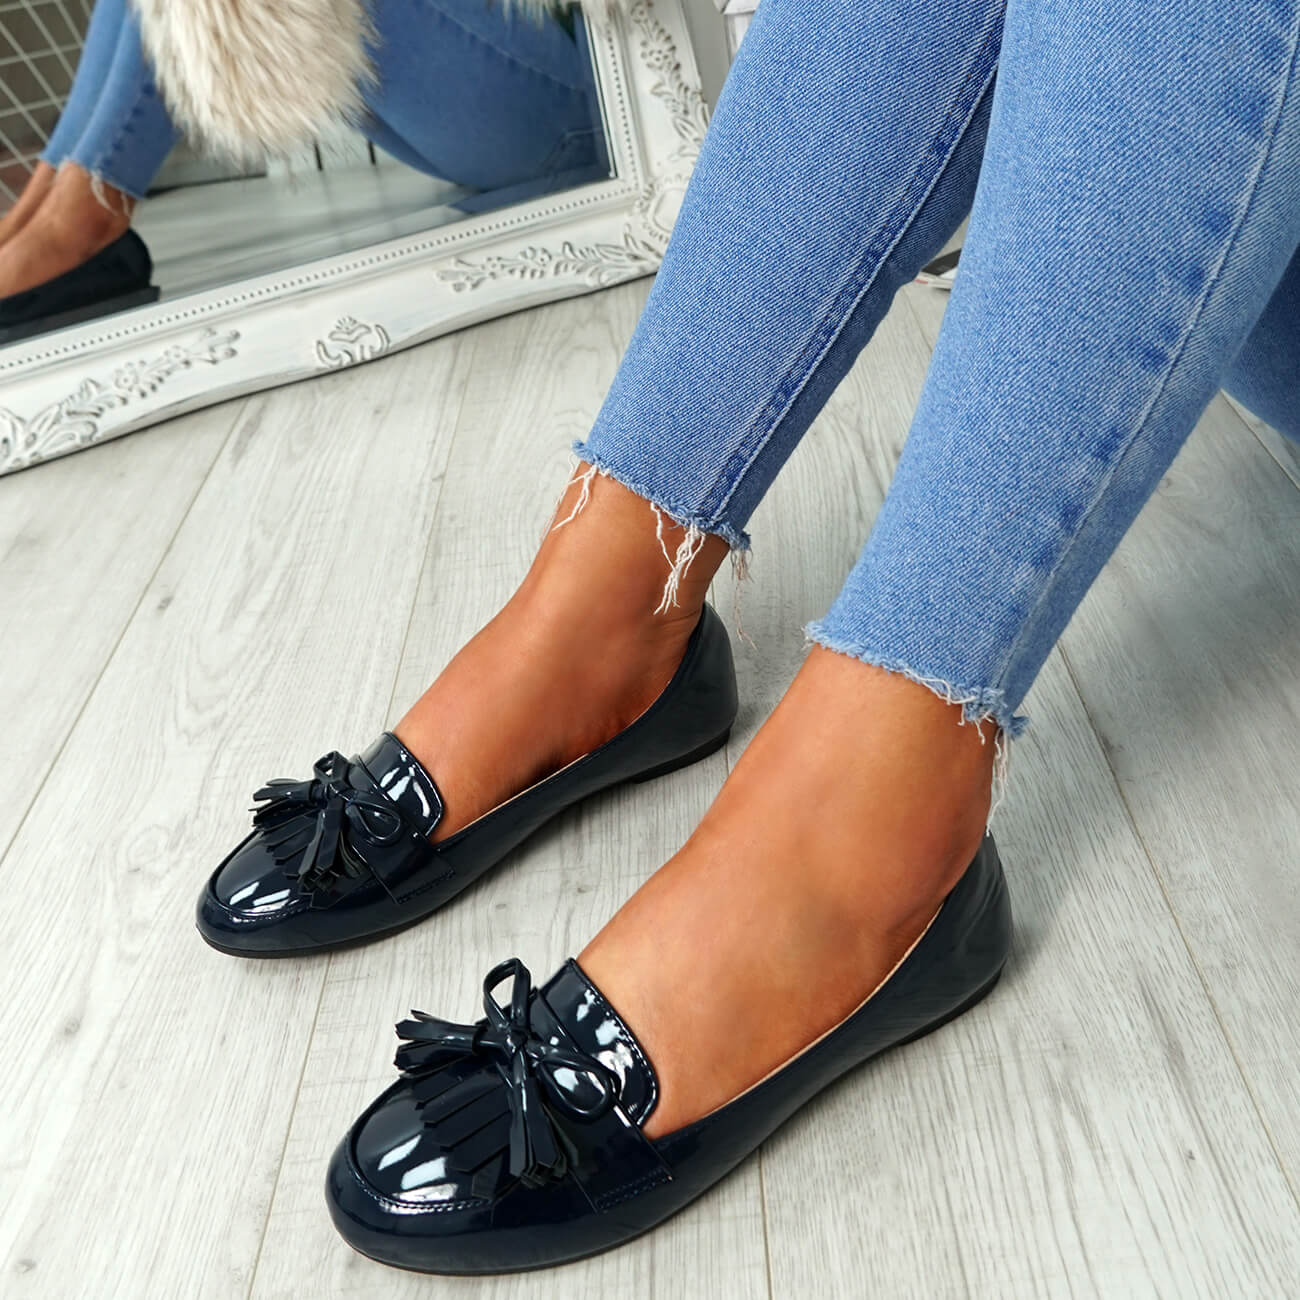 WOMENS-LADIES-FRINGE-BALLERINAS-SLIP-ON-FLAT-DOLLY-PUMPS-CASUAL-SMART-SHOES-SIZE thumbnail 18